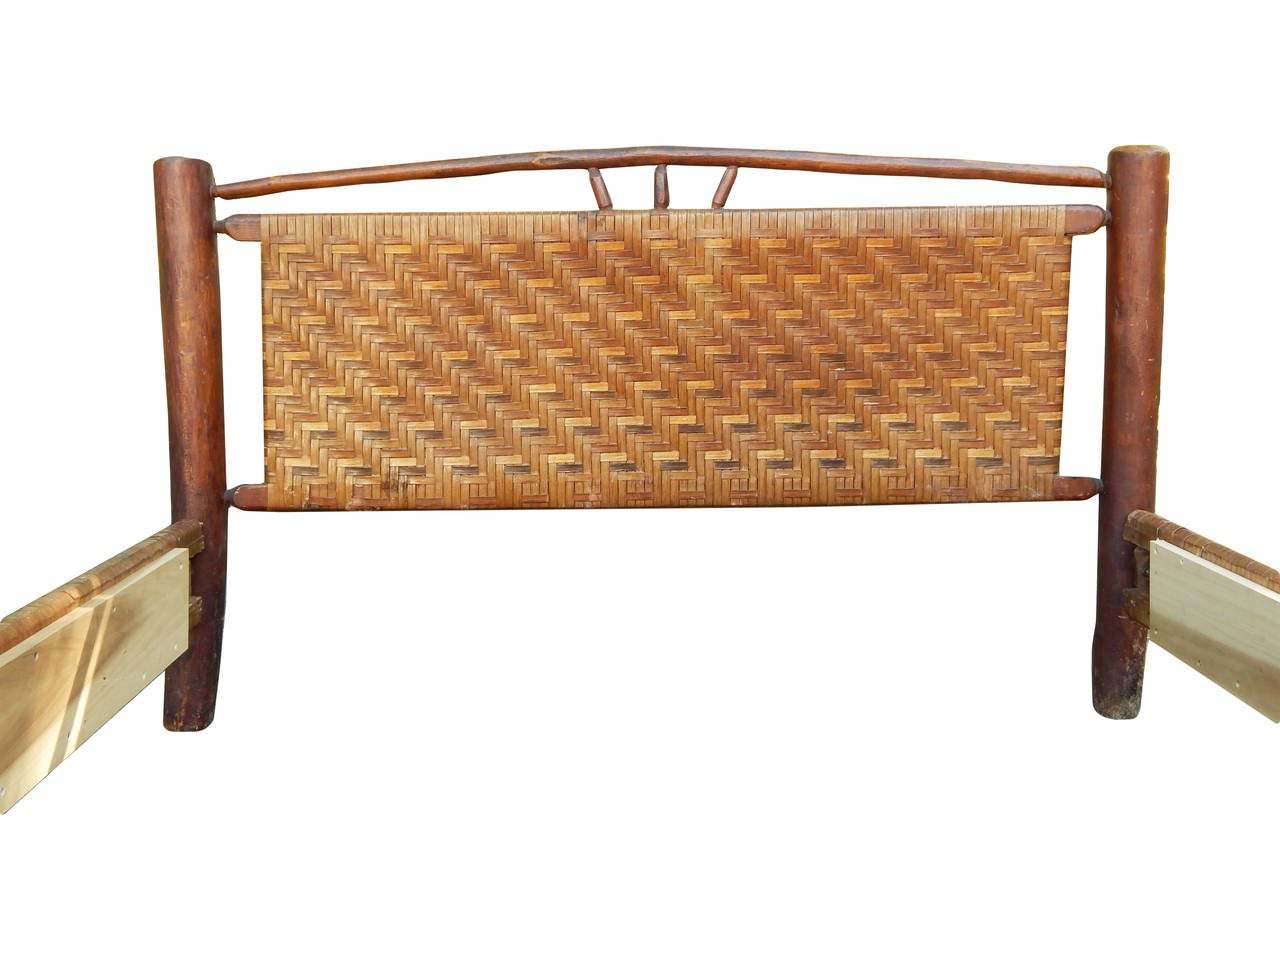 hickory chair furniture beds ergonomic gaming reddit old full sized bed at 1stdibs